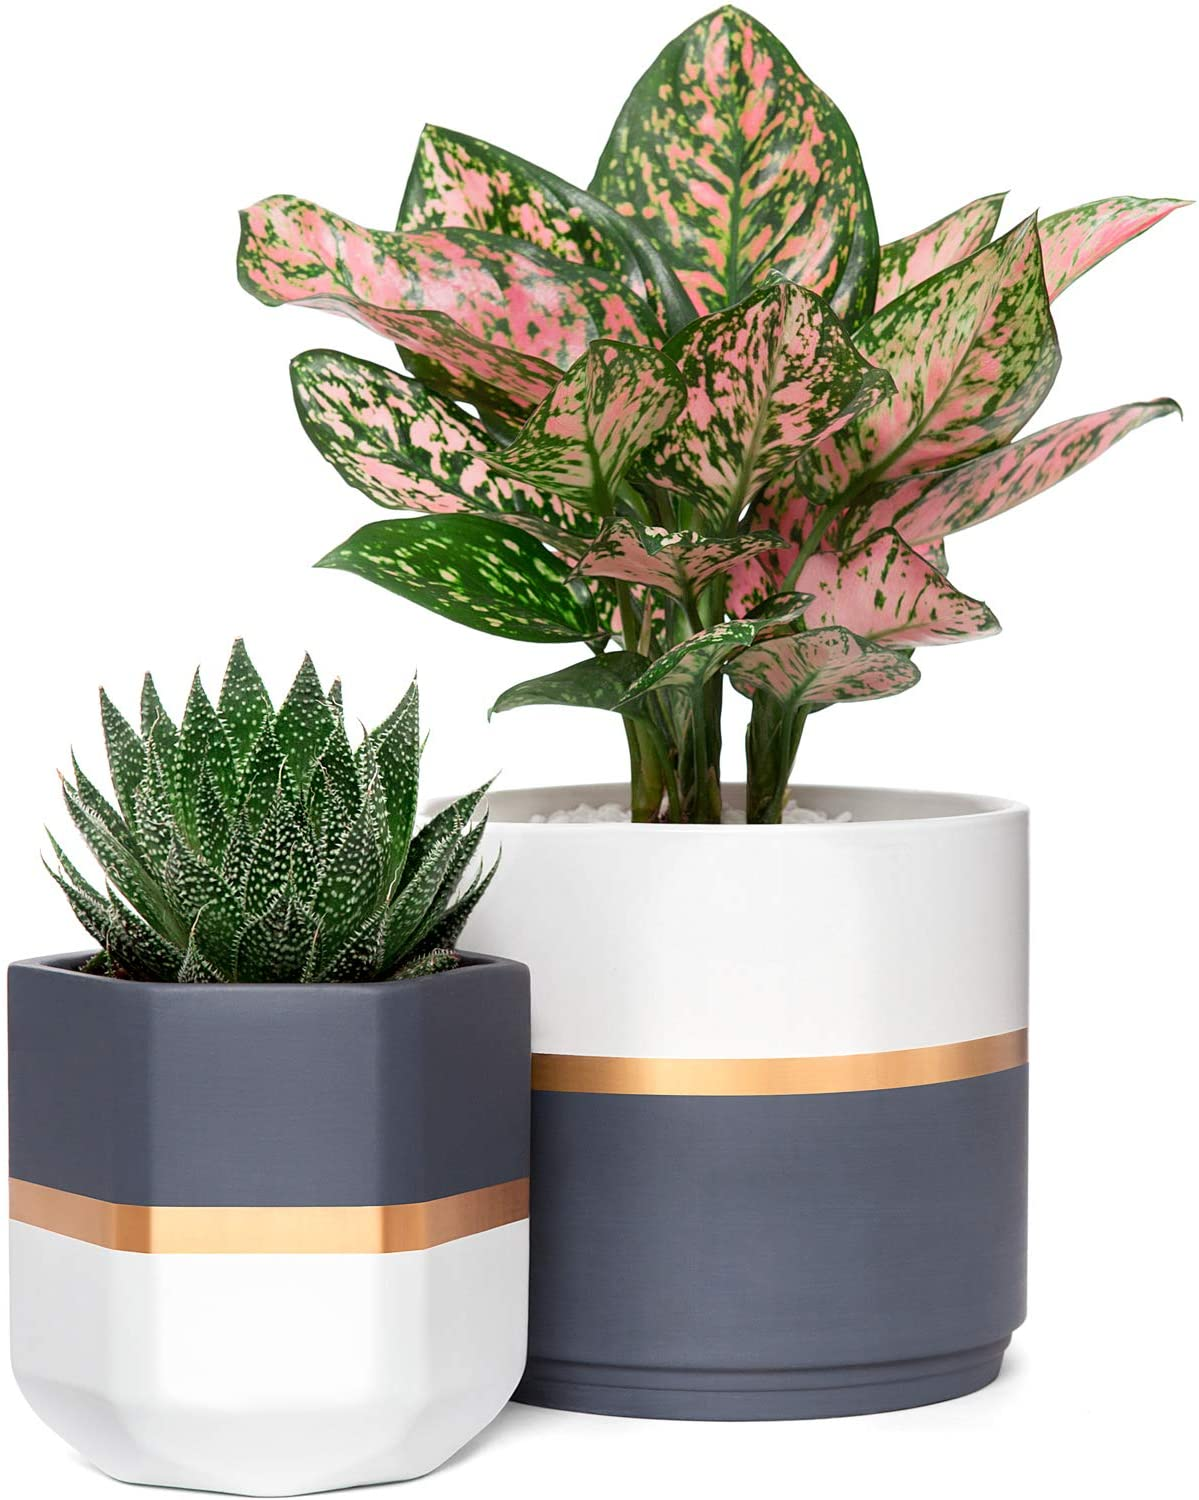 Amazon Com Mkono Ceramic Planters 5 And 6 3 Inch Indoor Modern Flower Plant Pot Set Of 2 Geometric Gardening Pots With Drainage For All House Plants Herbs Flowers Gold And Grey Detailing